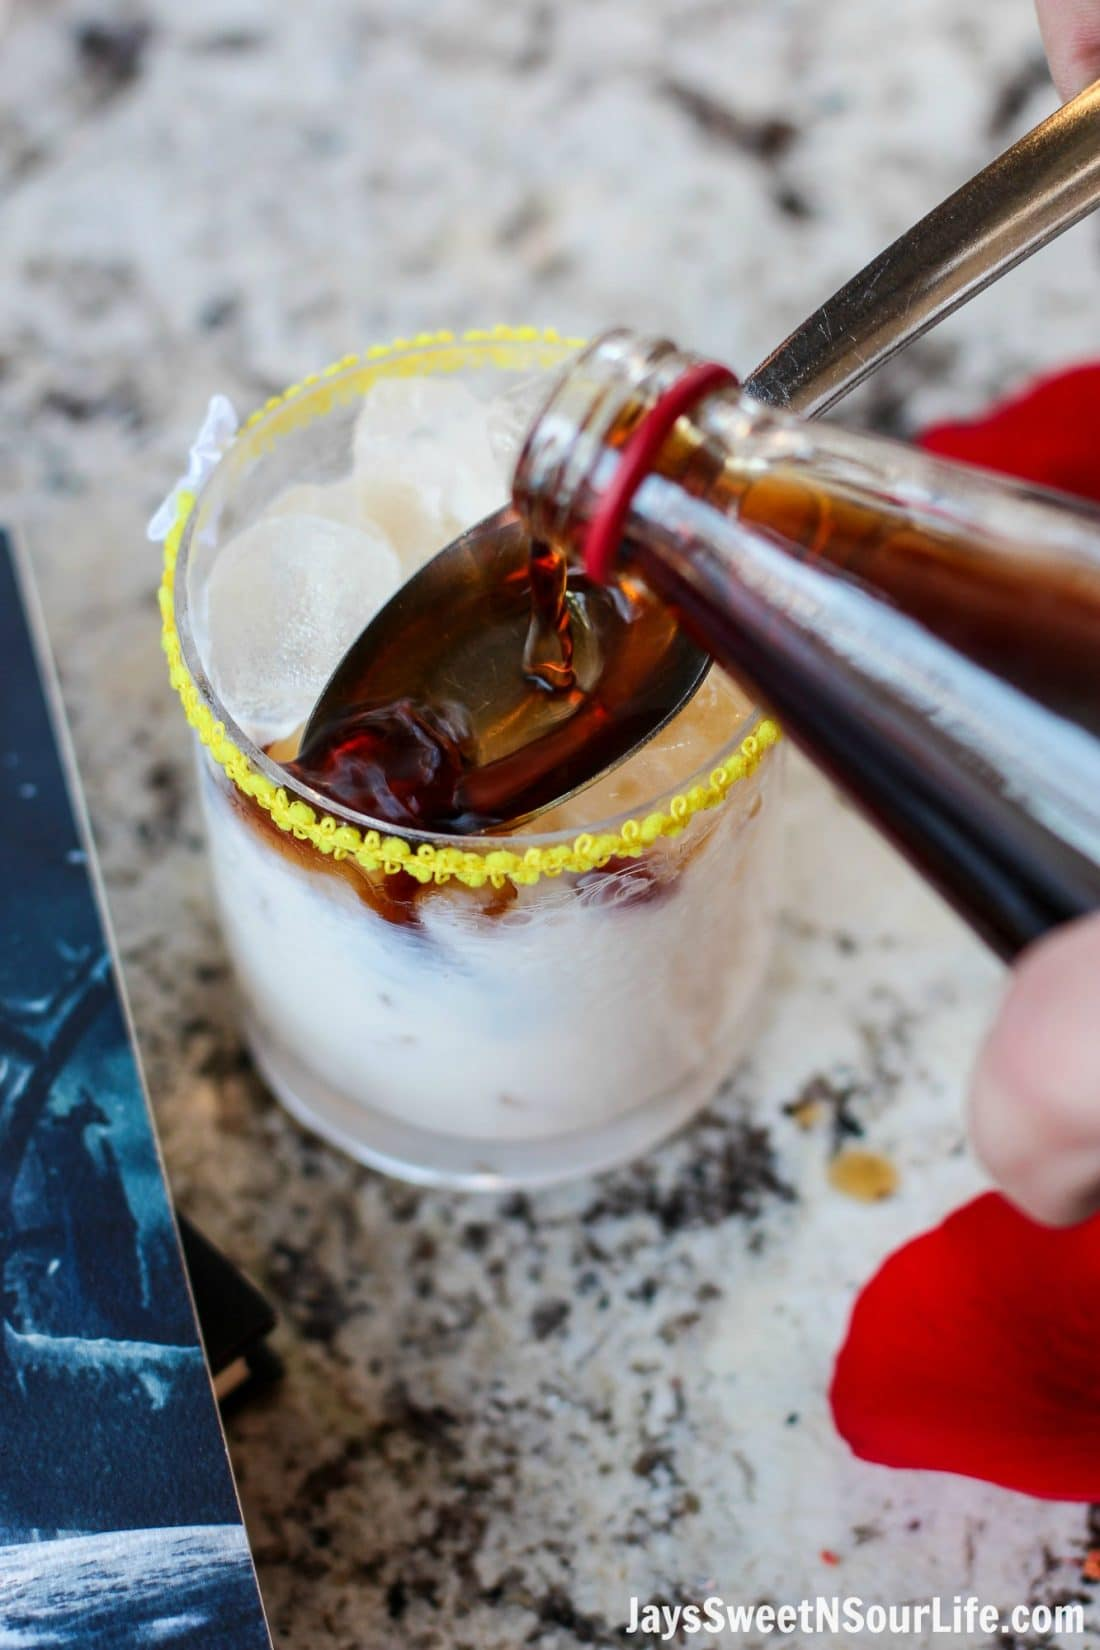 Beauty and the Beast Cocktail Step 2. Break the curse with this Disney inspired Beauty and the Beast Cocktail. Made with layers of Kringle Cream Liqueur and Coffee Soda, this simple but elegant cocktail recipe delivers a delicious big flavor.